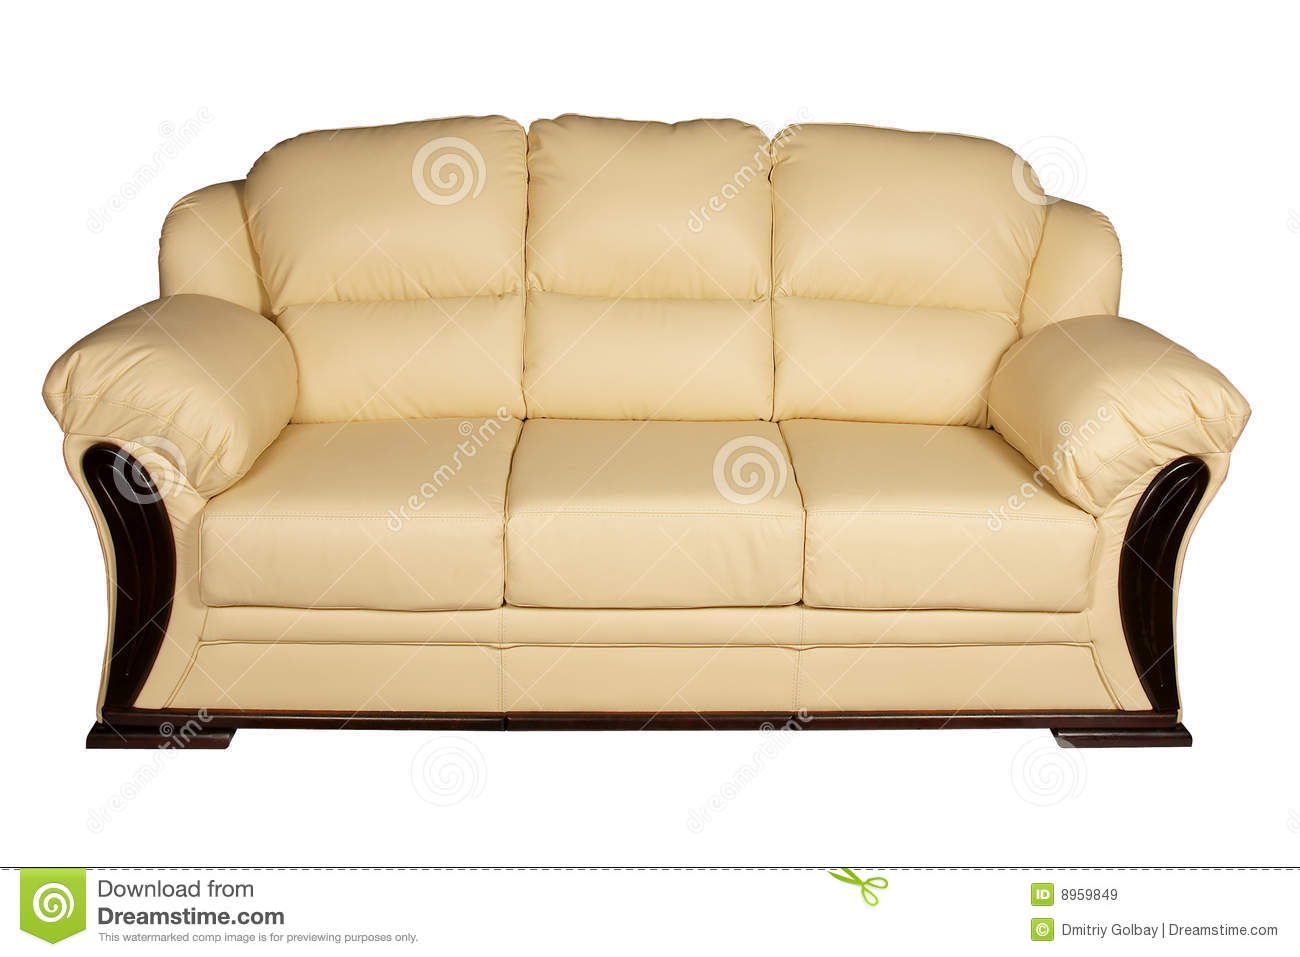 Cream Leather Sofa Stock Image Image Of Comfort Colored 8959849